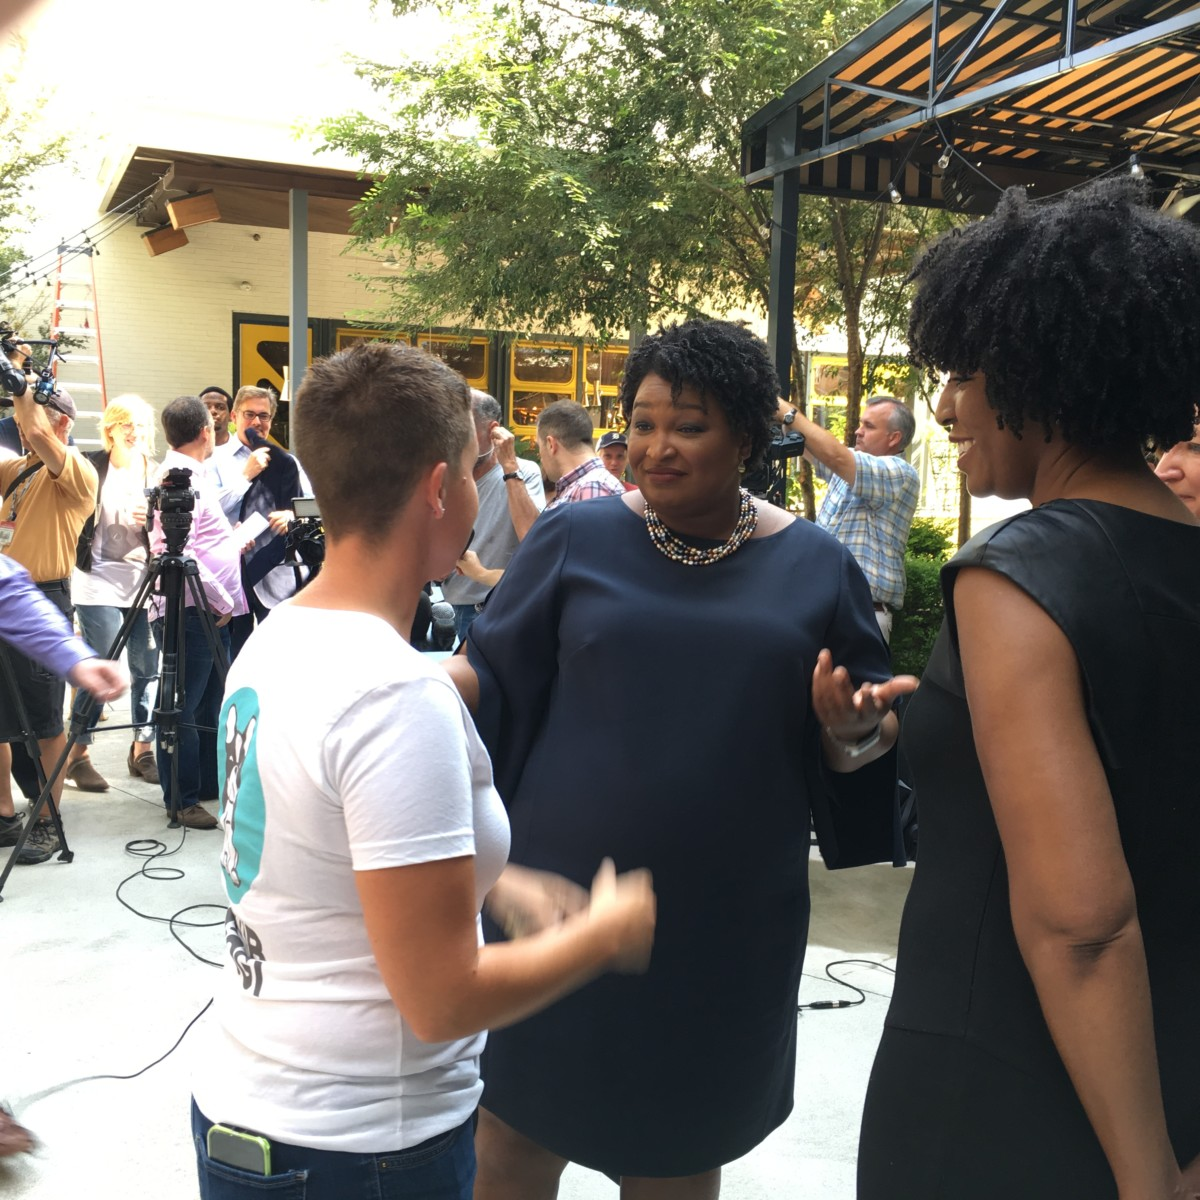 Stacey Abrams, Georgia's democratic gubernatorial candidate, speaks with supporters after an Atlanta press conference on July 27, 2018. Credit: Maggie Lee